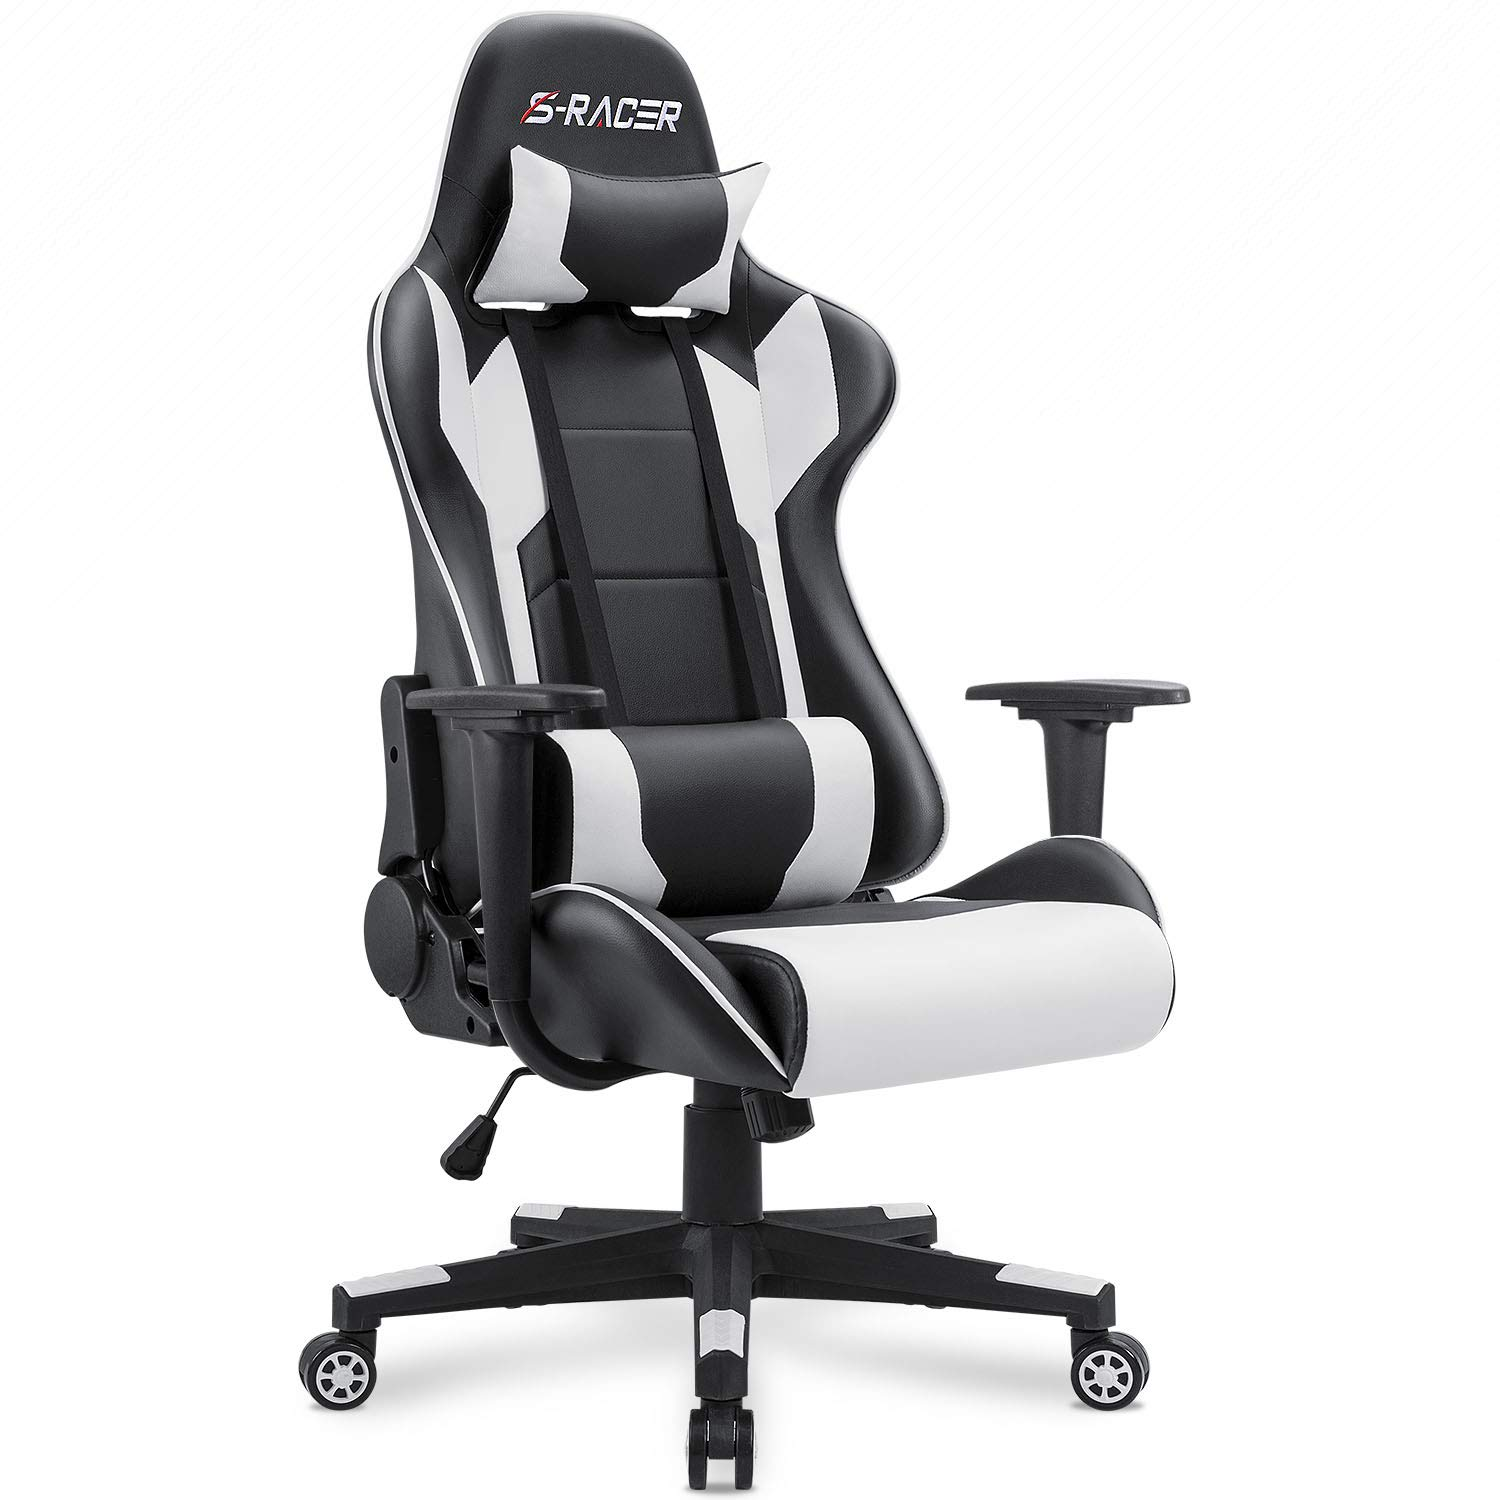 Homall Gaming Chair Office Chair High Back Computer Chair PU Leather Desk Chair PC Racing Executive Ergonomic Adjustable Swivel Task Chair with Headrest and Lumbar Support White